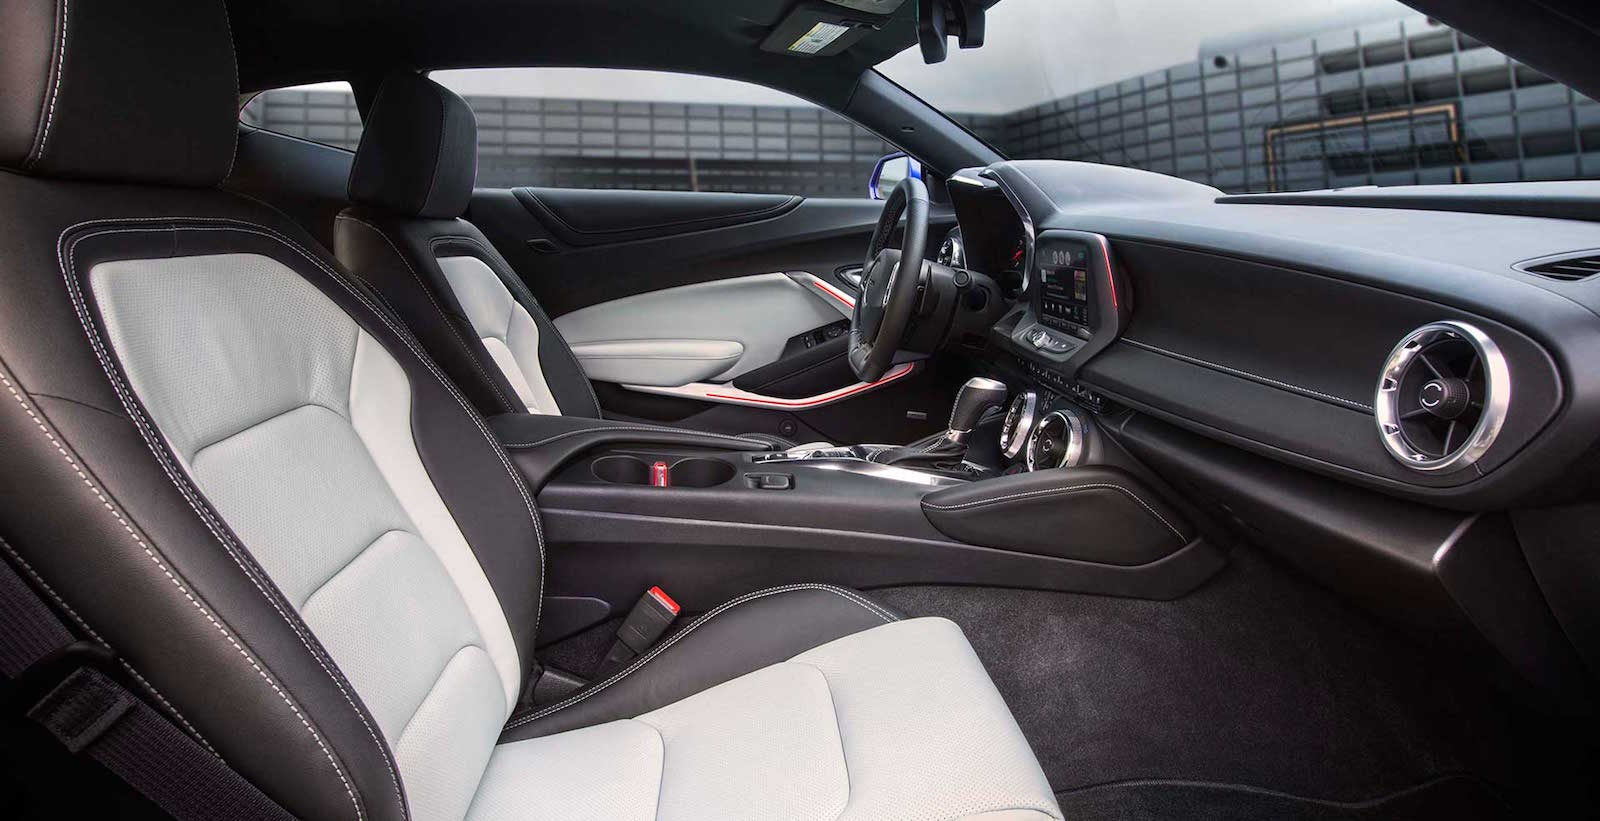 The black and white interior of a 2016 Chevy Camaro is shown from the side.